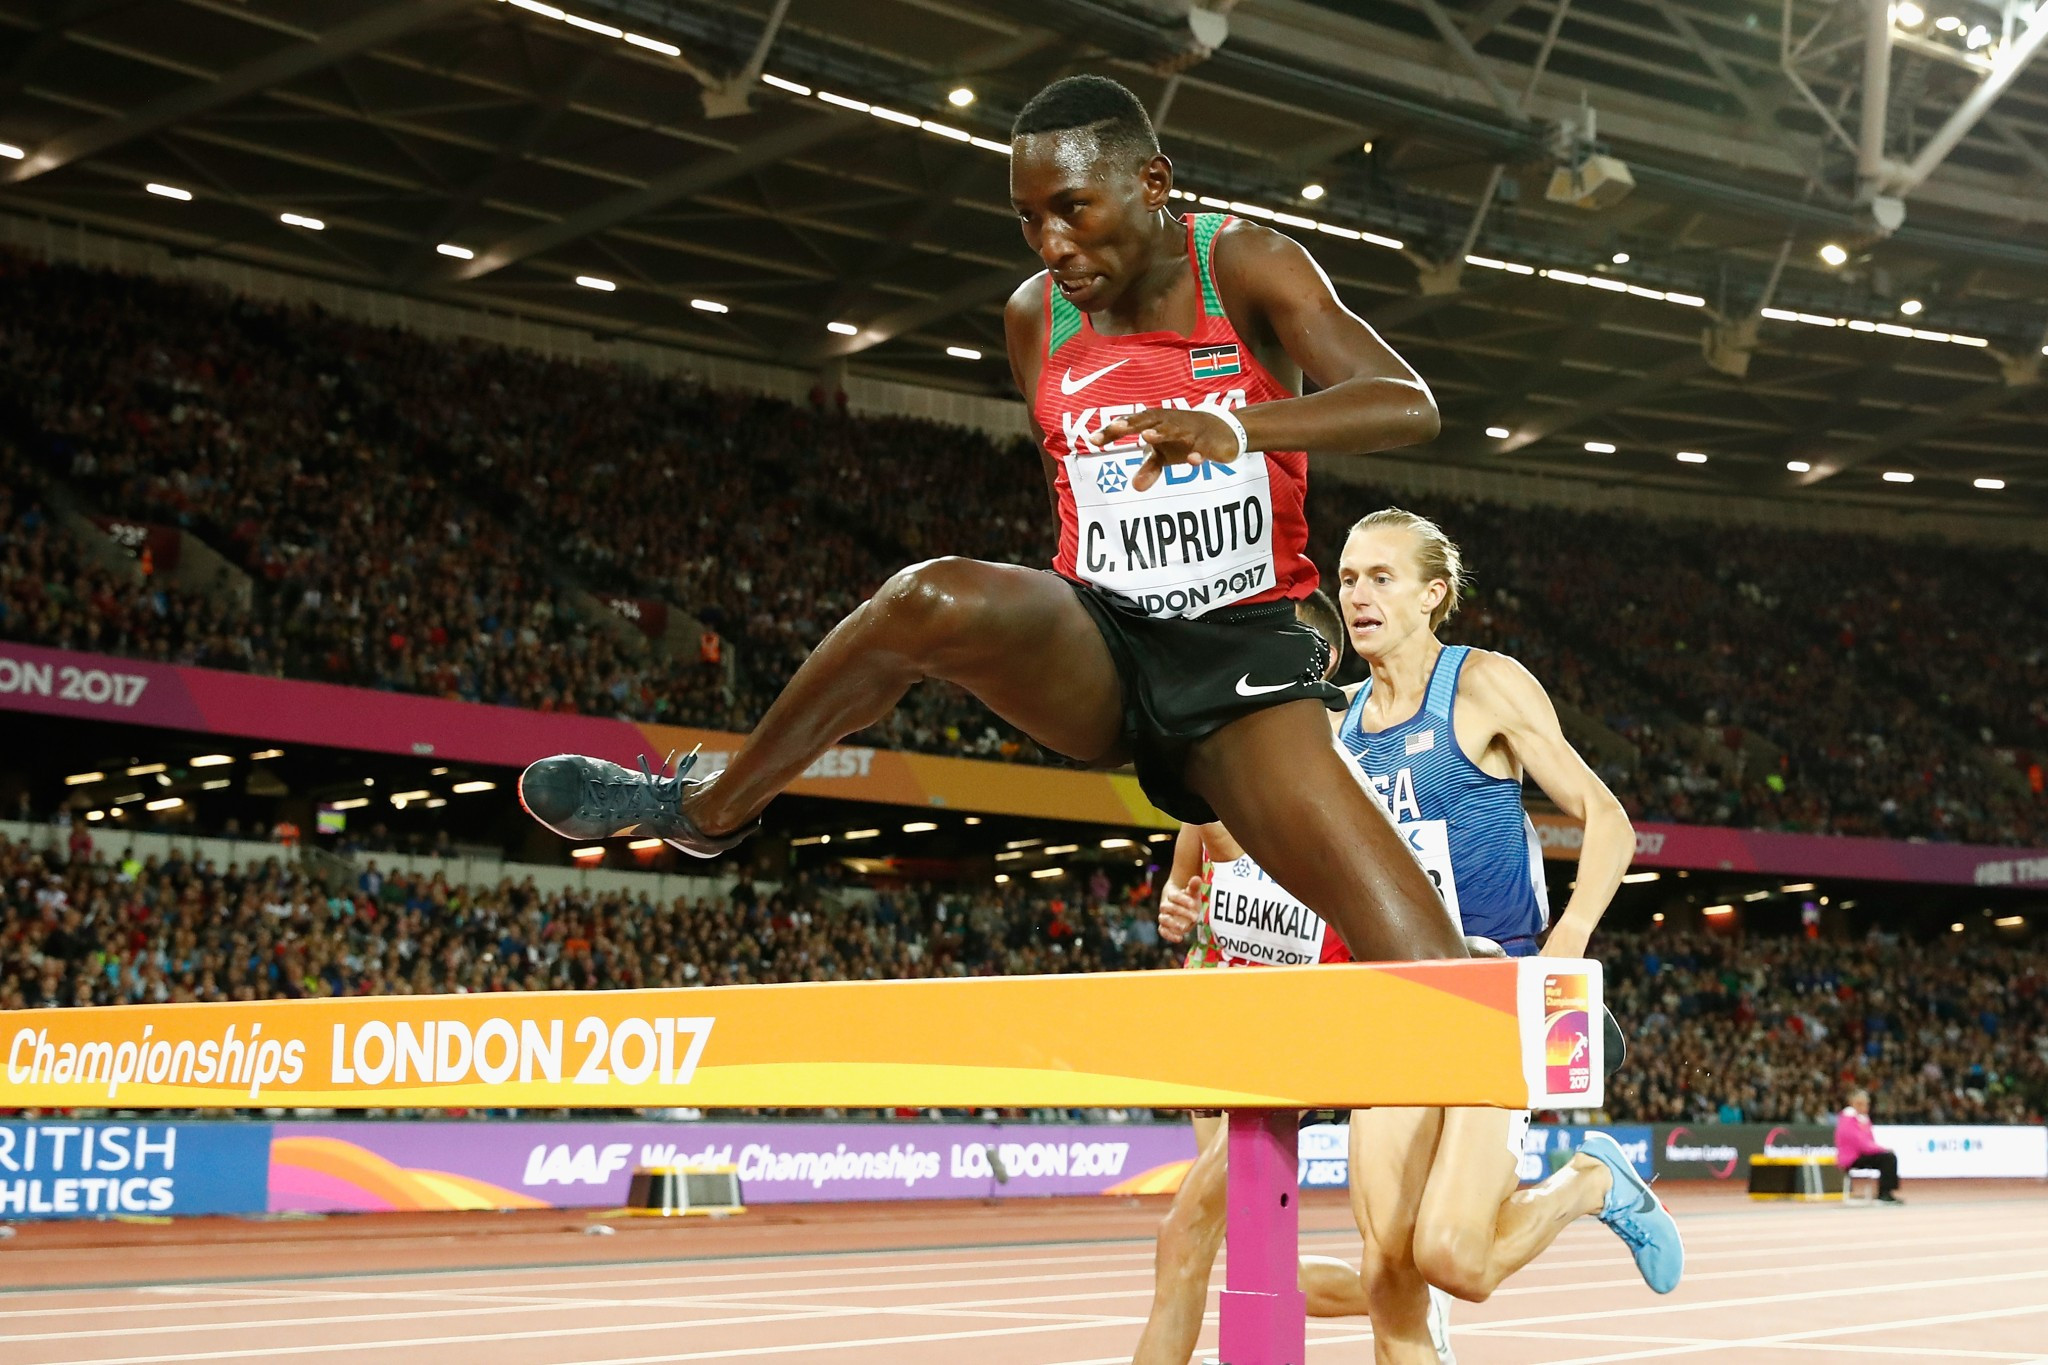 Kenya's Conseslus Kipruto added the world 3,000m steeplechase crown to his Olympic title ©Getty Images